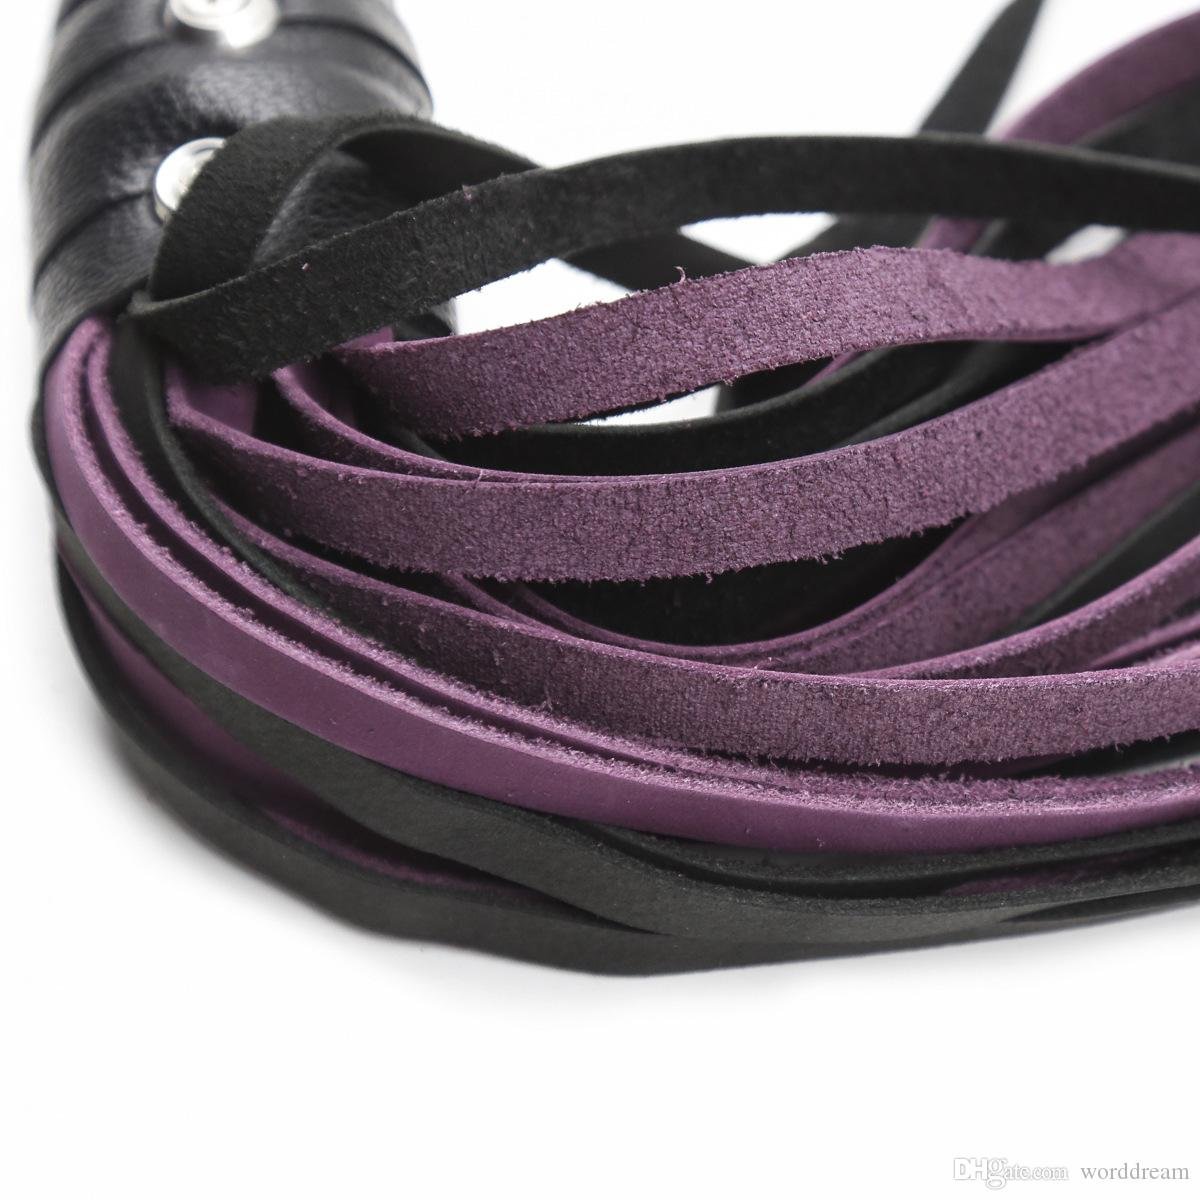 BDSM Genuine Leather Whip Flogger Ass Spanking Bondage Slave In Adult Games For Couples Fetish Sex Toys For Women And Men